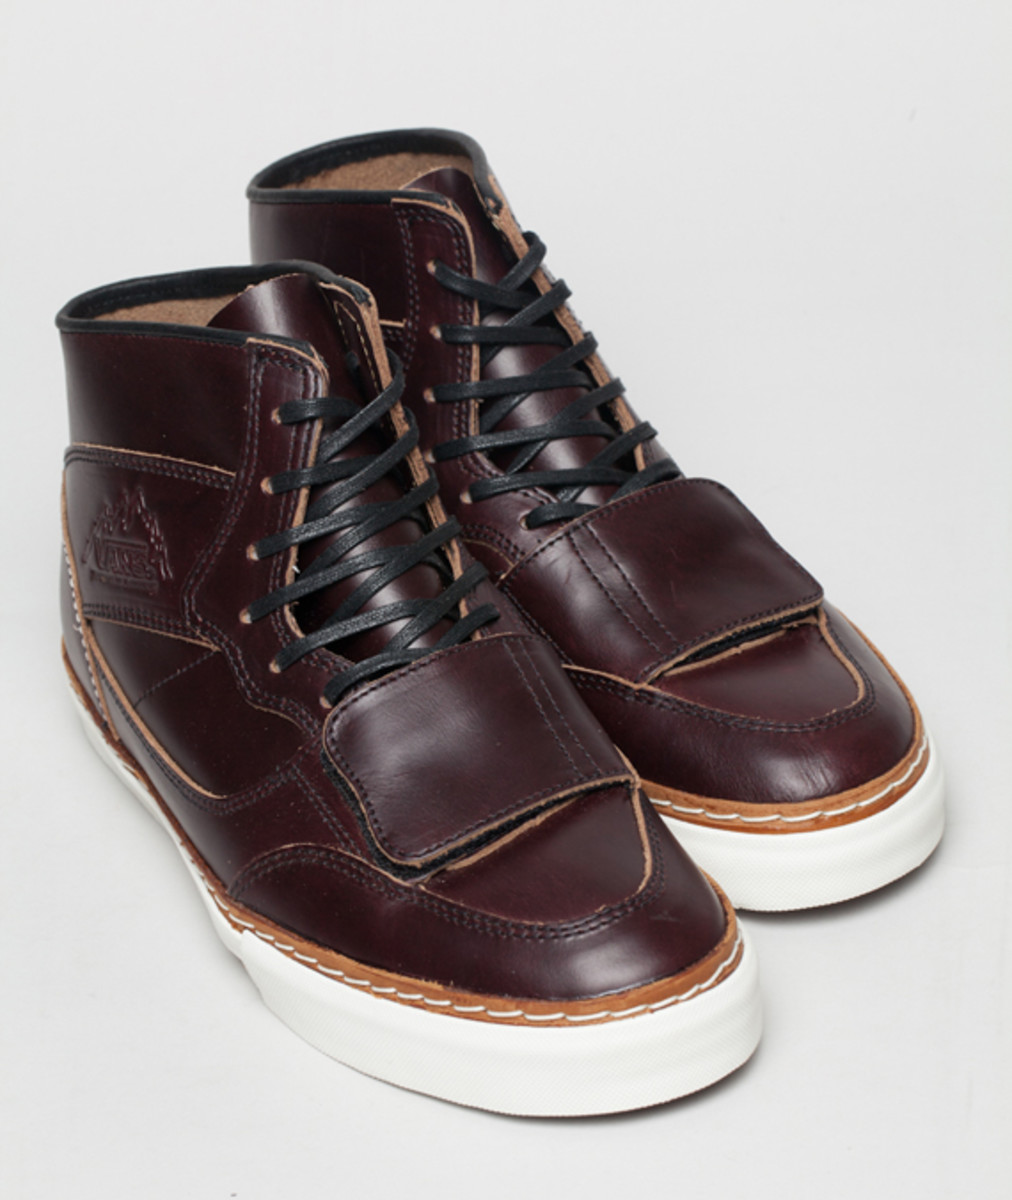 horween-leather-vans-mt-edition-decon-lx-07